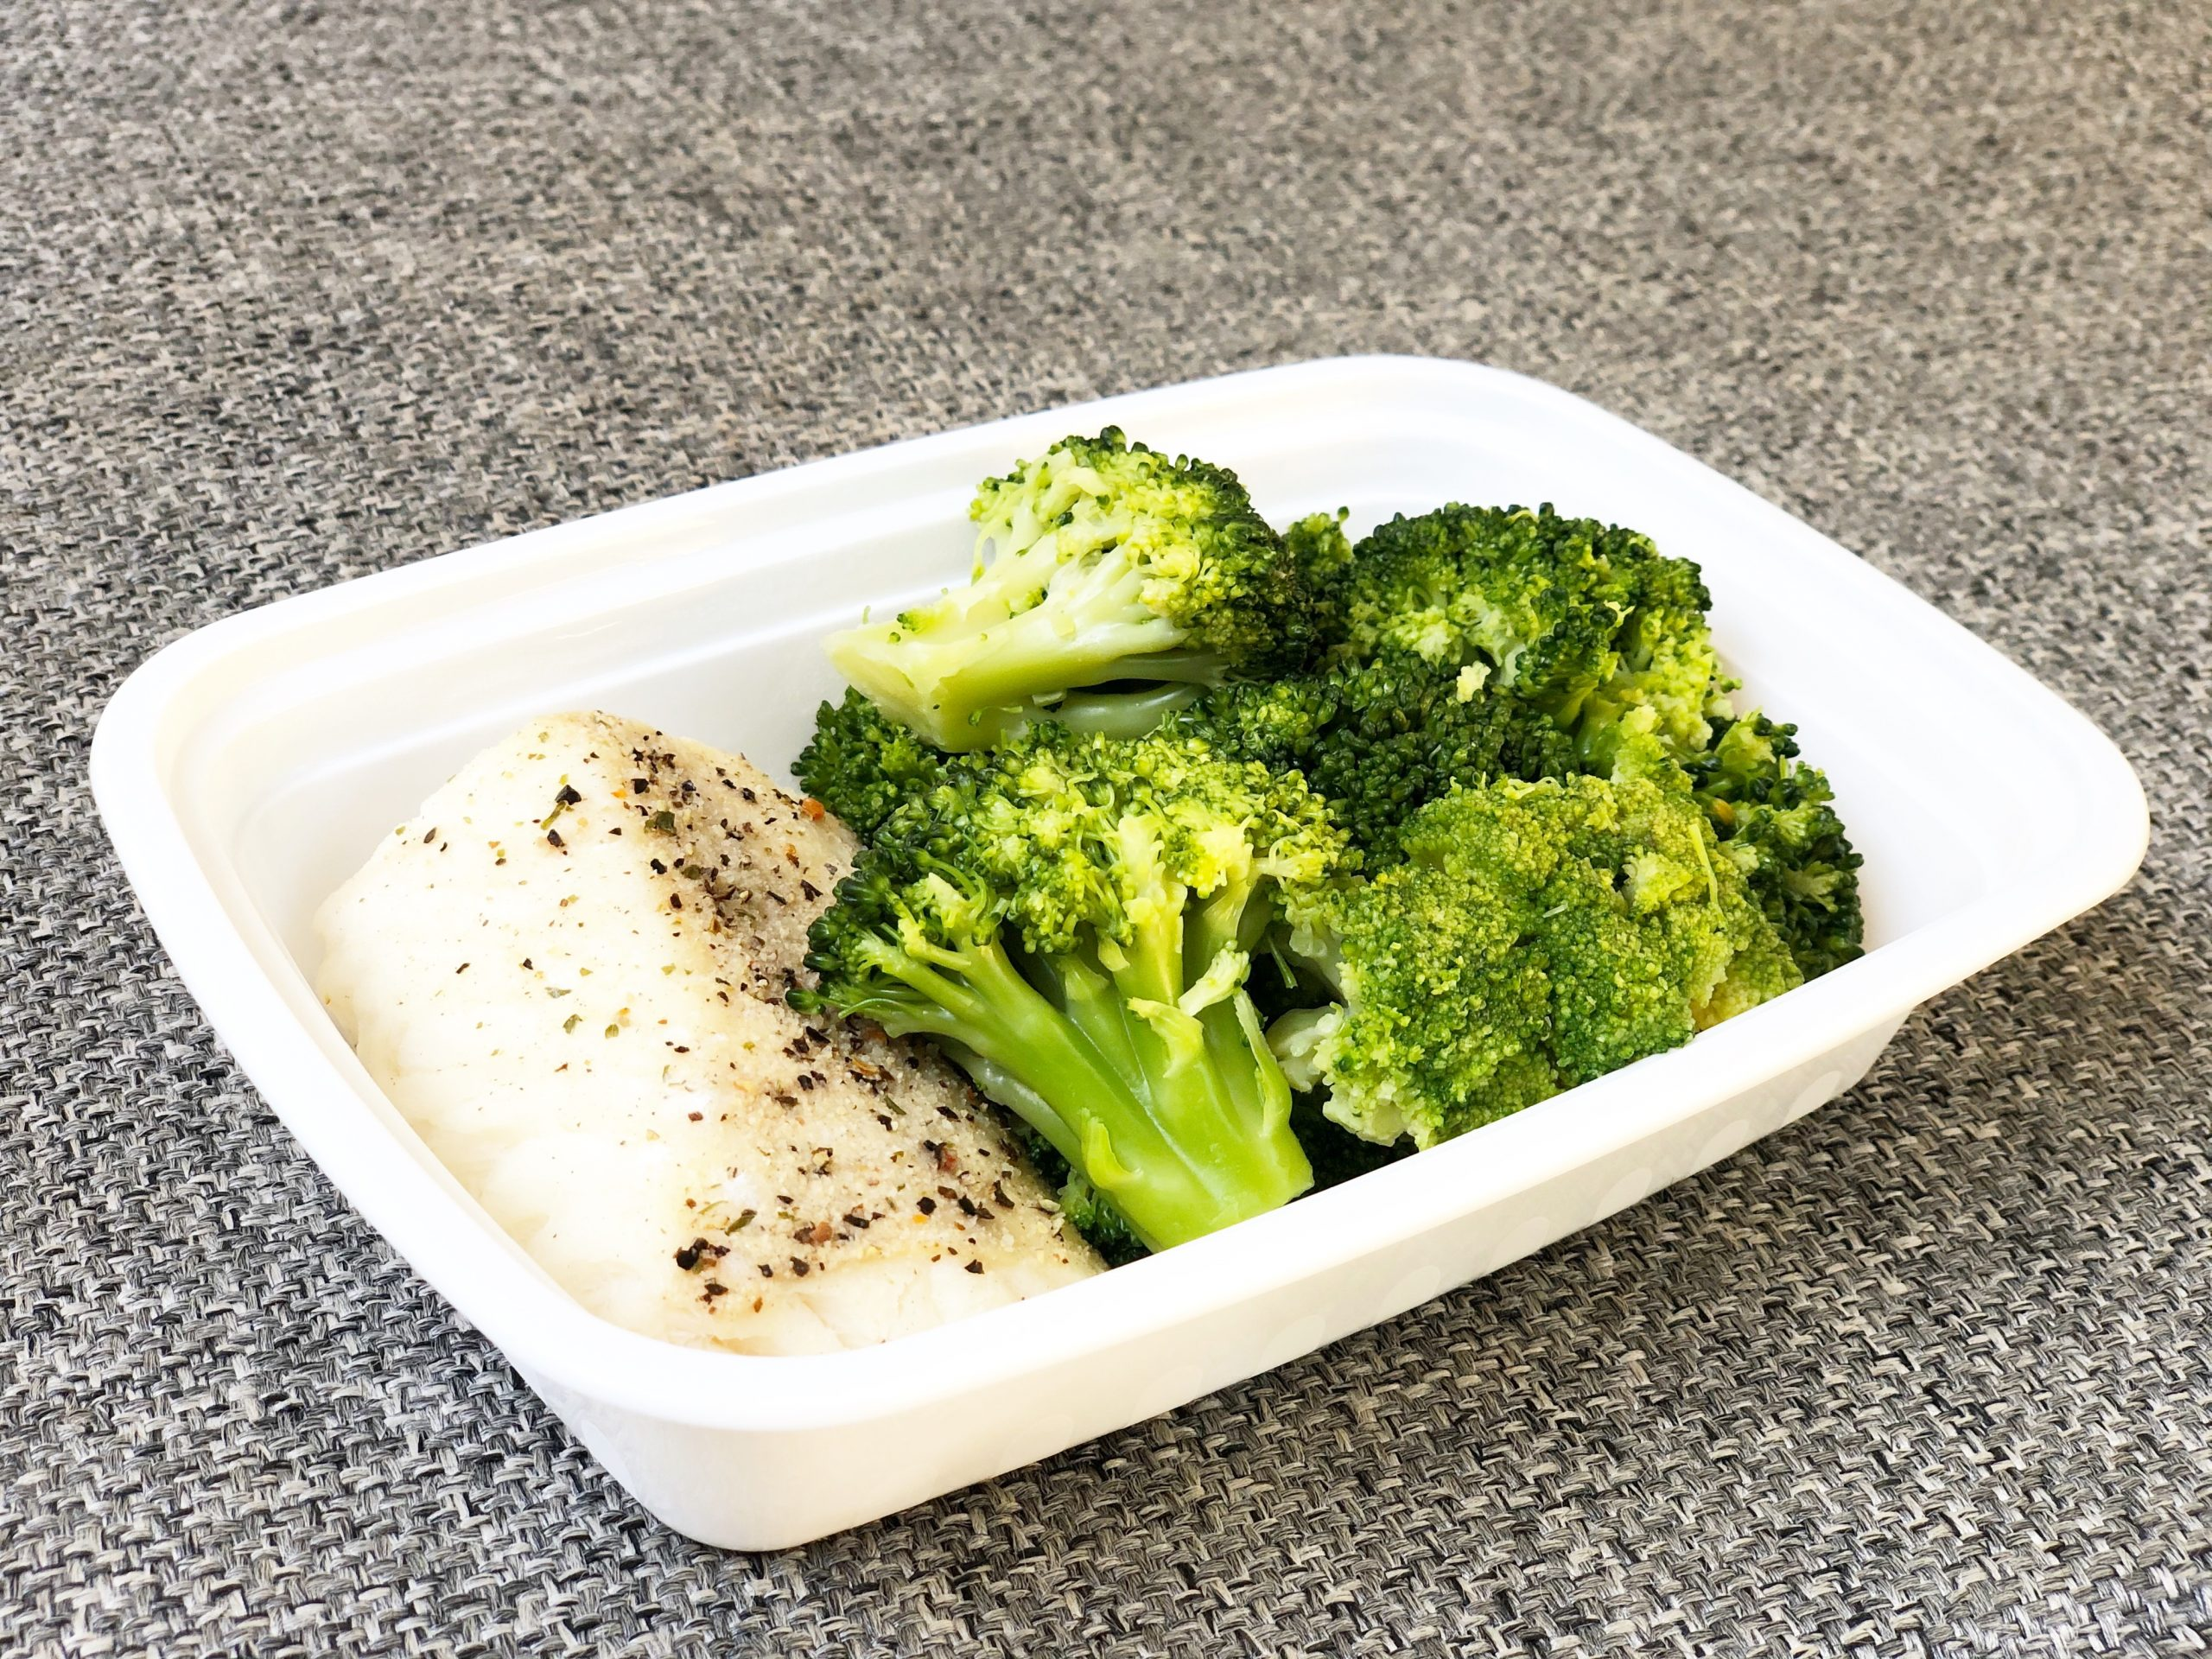 Garlic pepper cod and broccoli